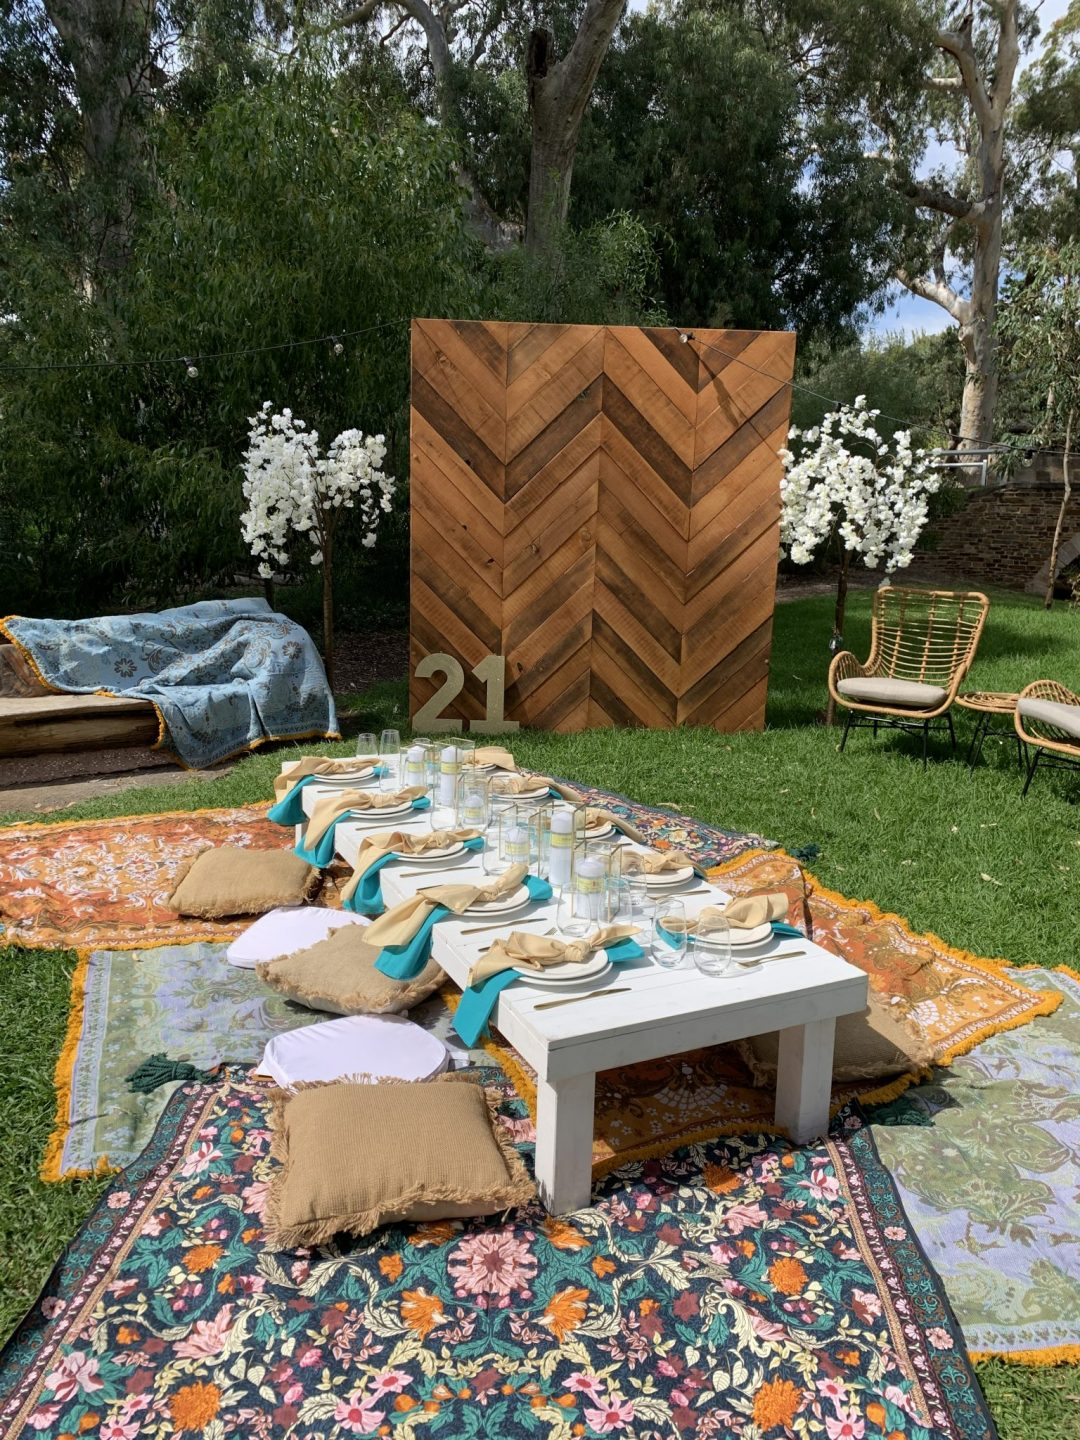 picnic-package-with-white-pallet-picnic-table-glass-candle-boxes-with-champagne-and-turquoise-linen-napkins-AFC-crockery-and-standard-glassware-assorted-cushions-and-wandering-folk-rugs